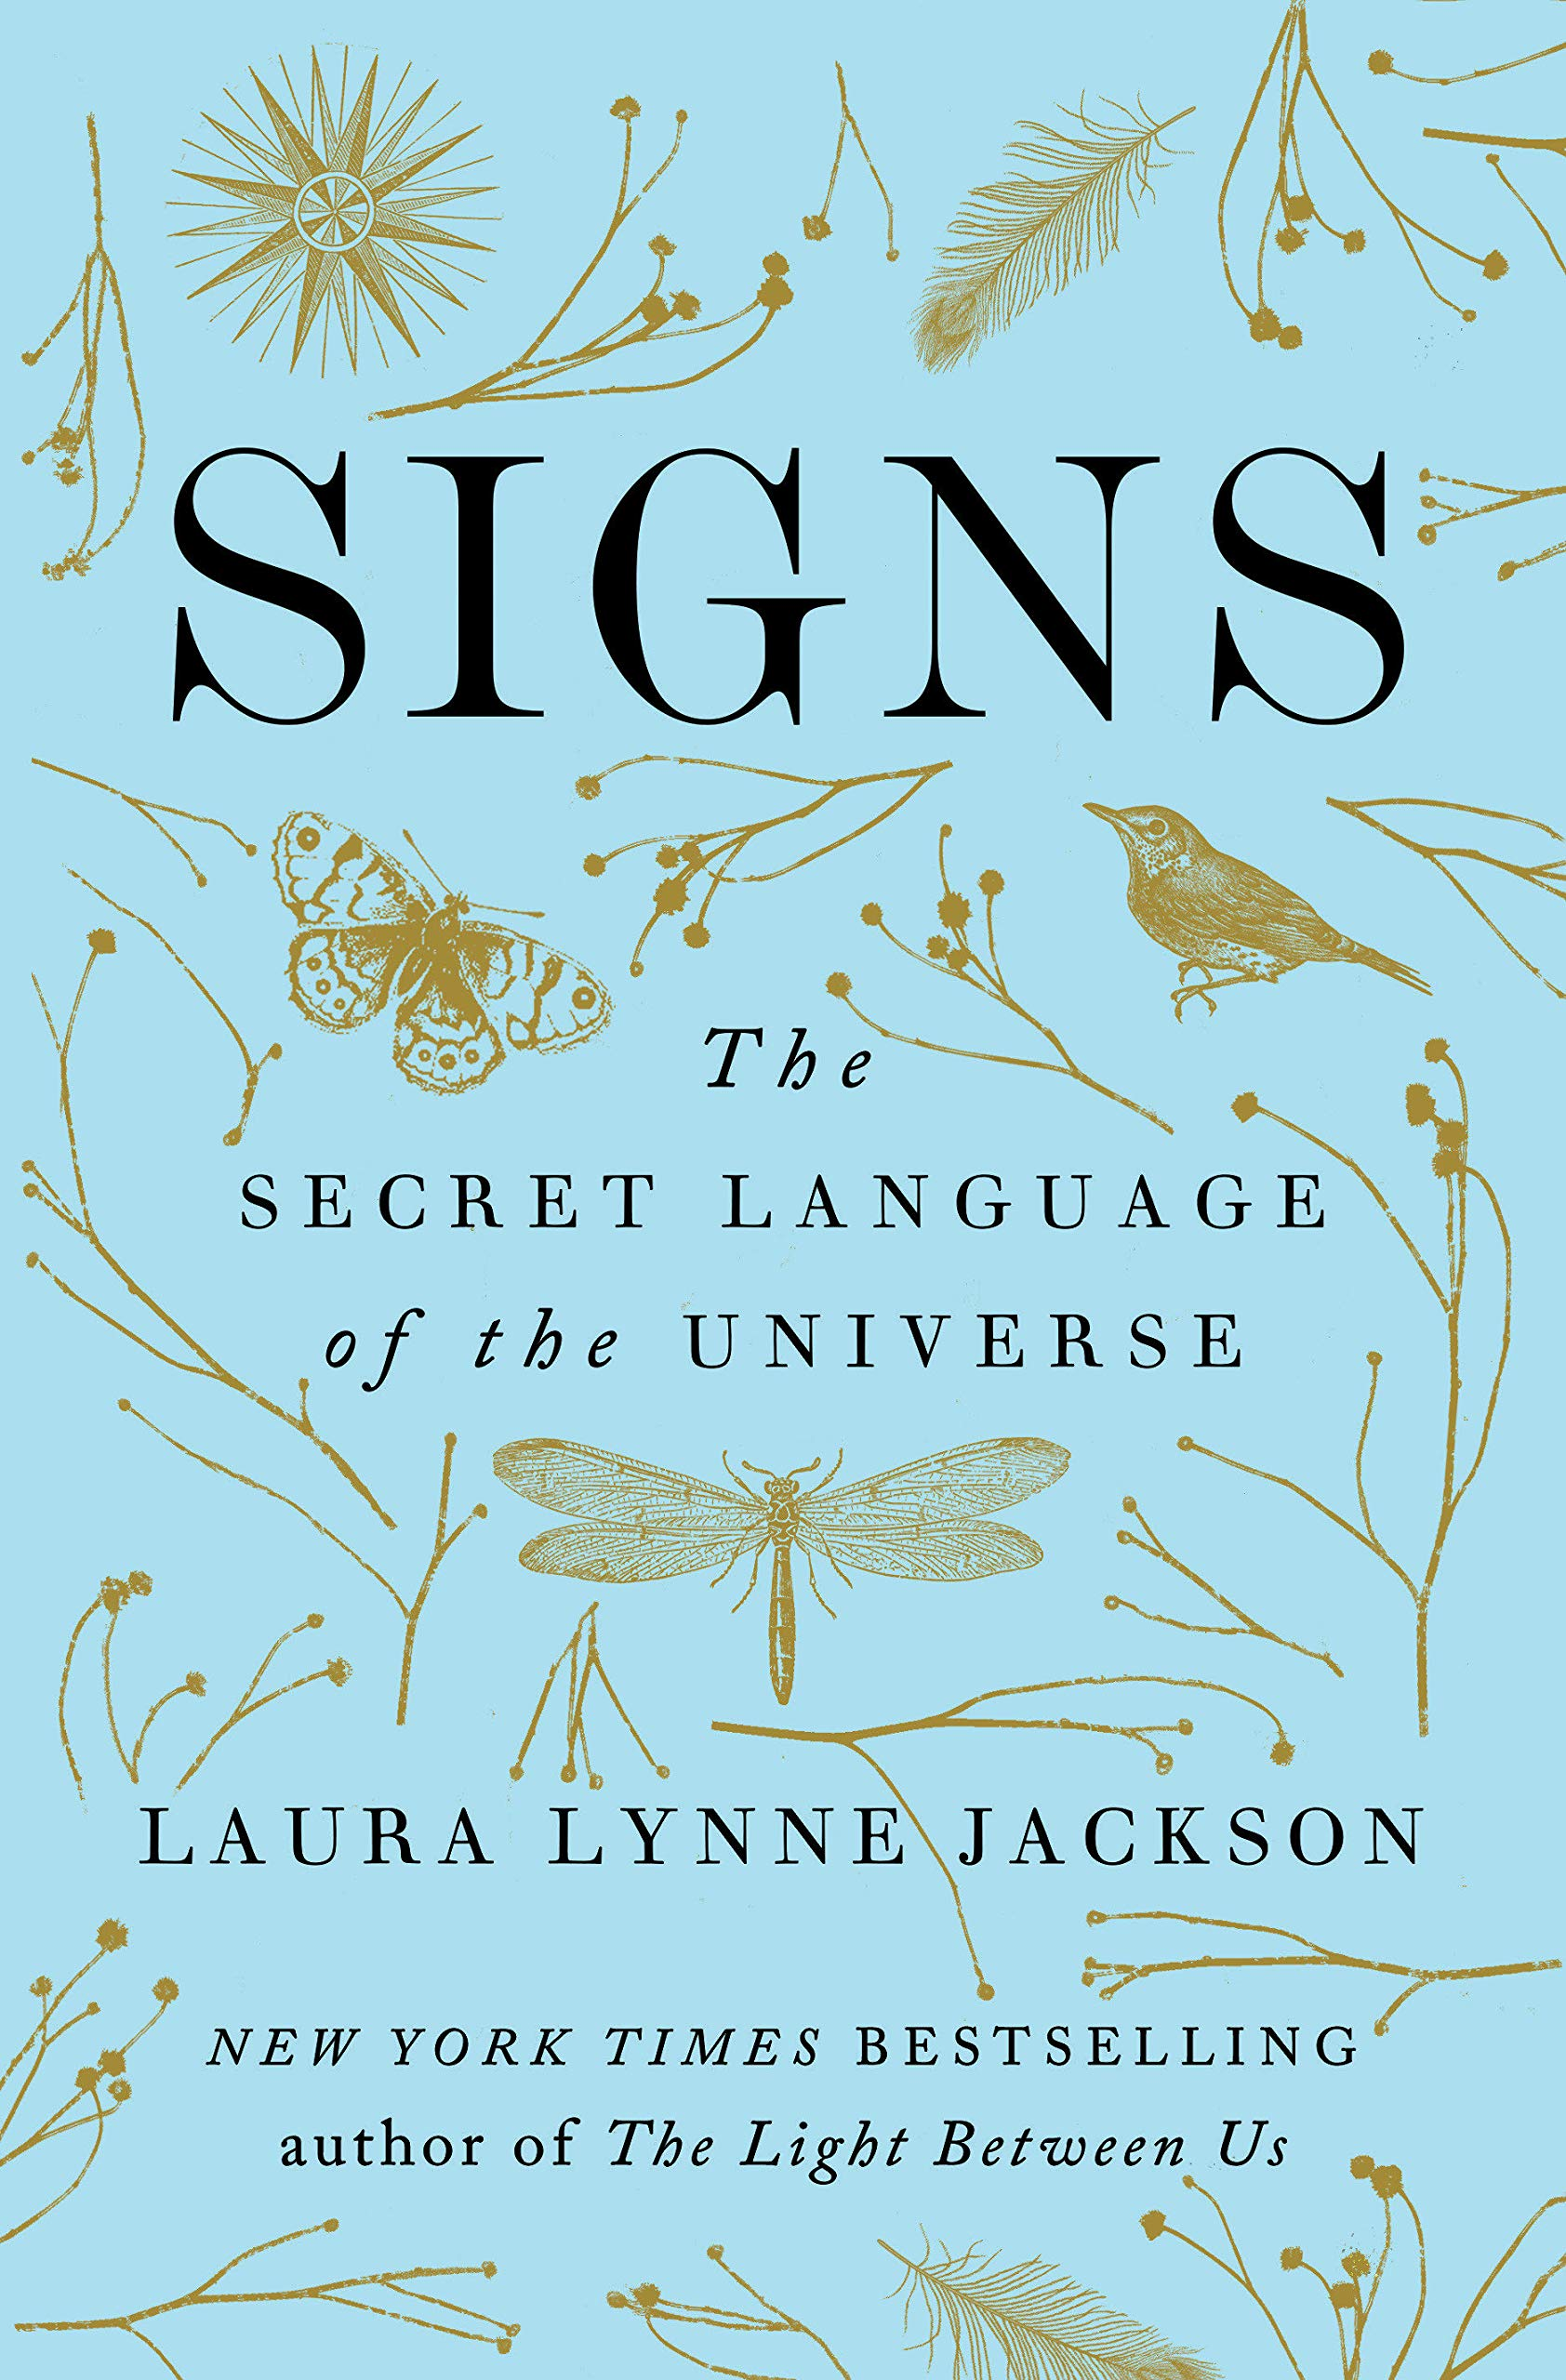 laura-lynne-jackson-signs-book-elizabeth-irvine-truewellbeing- serendipity-earth-angels-messages-from-above-.jpg